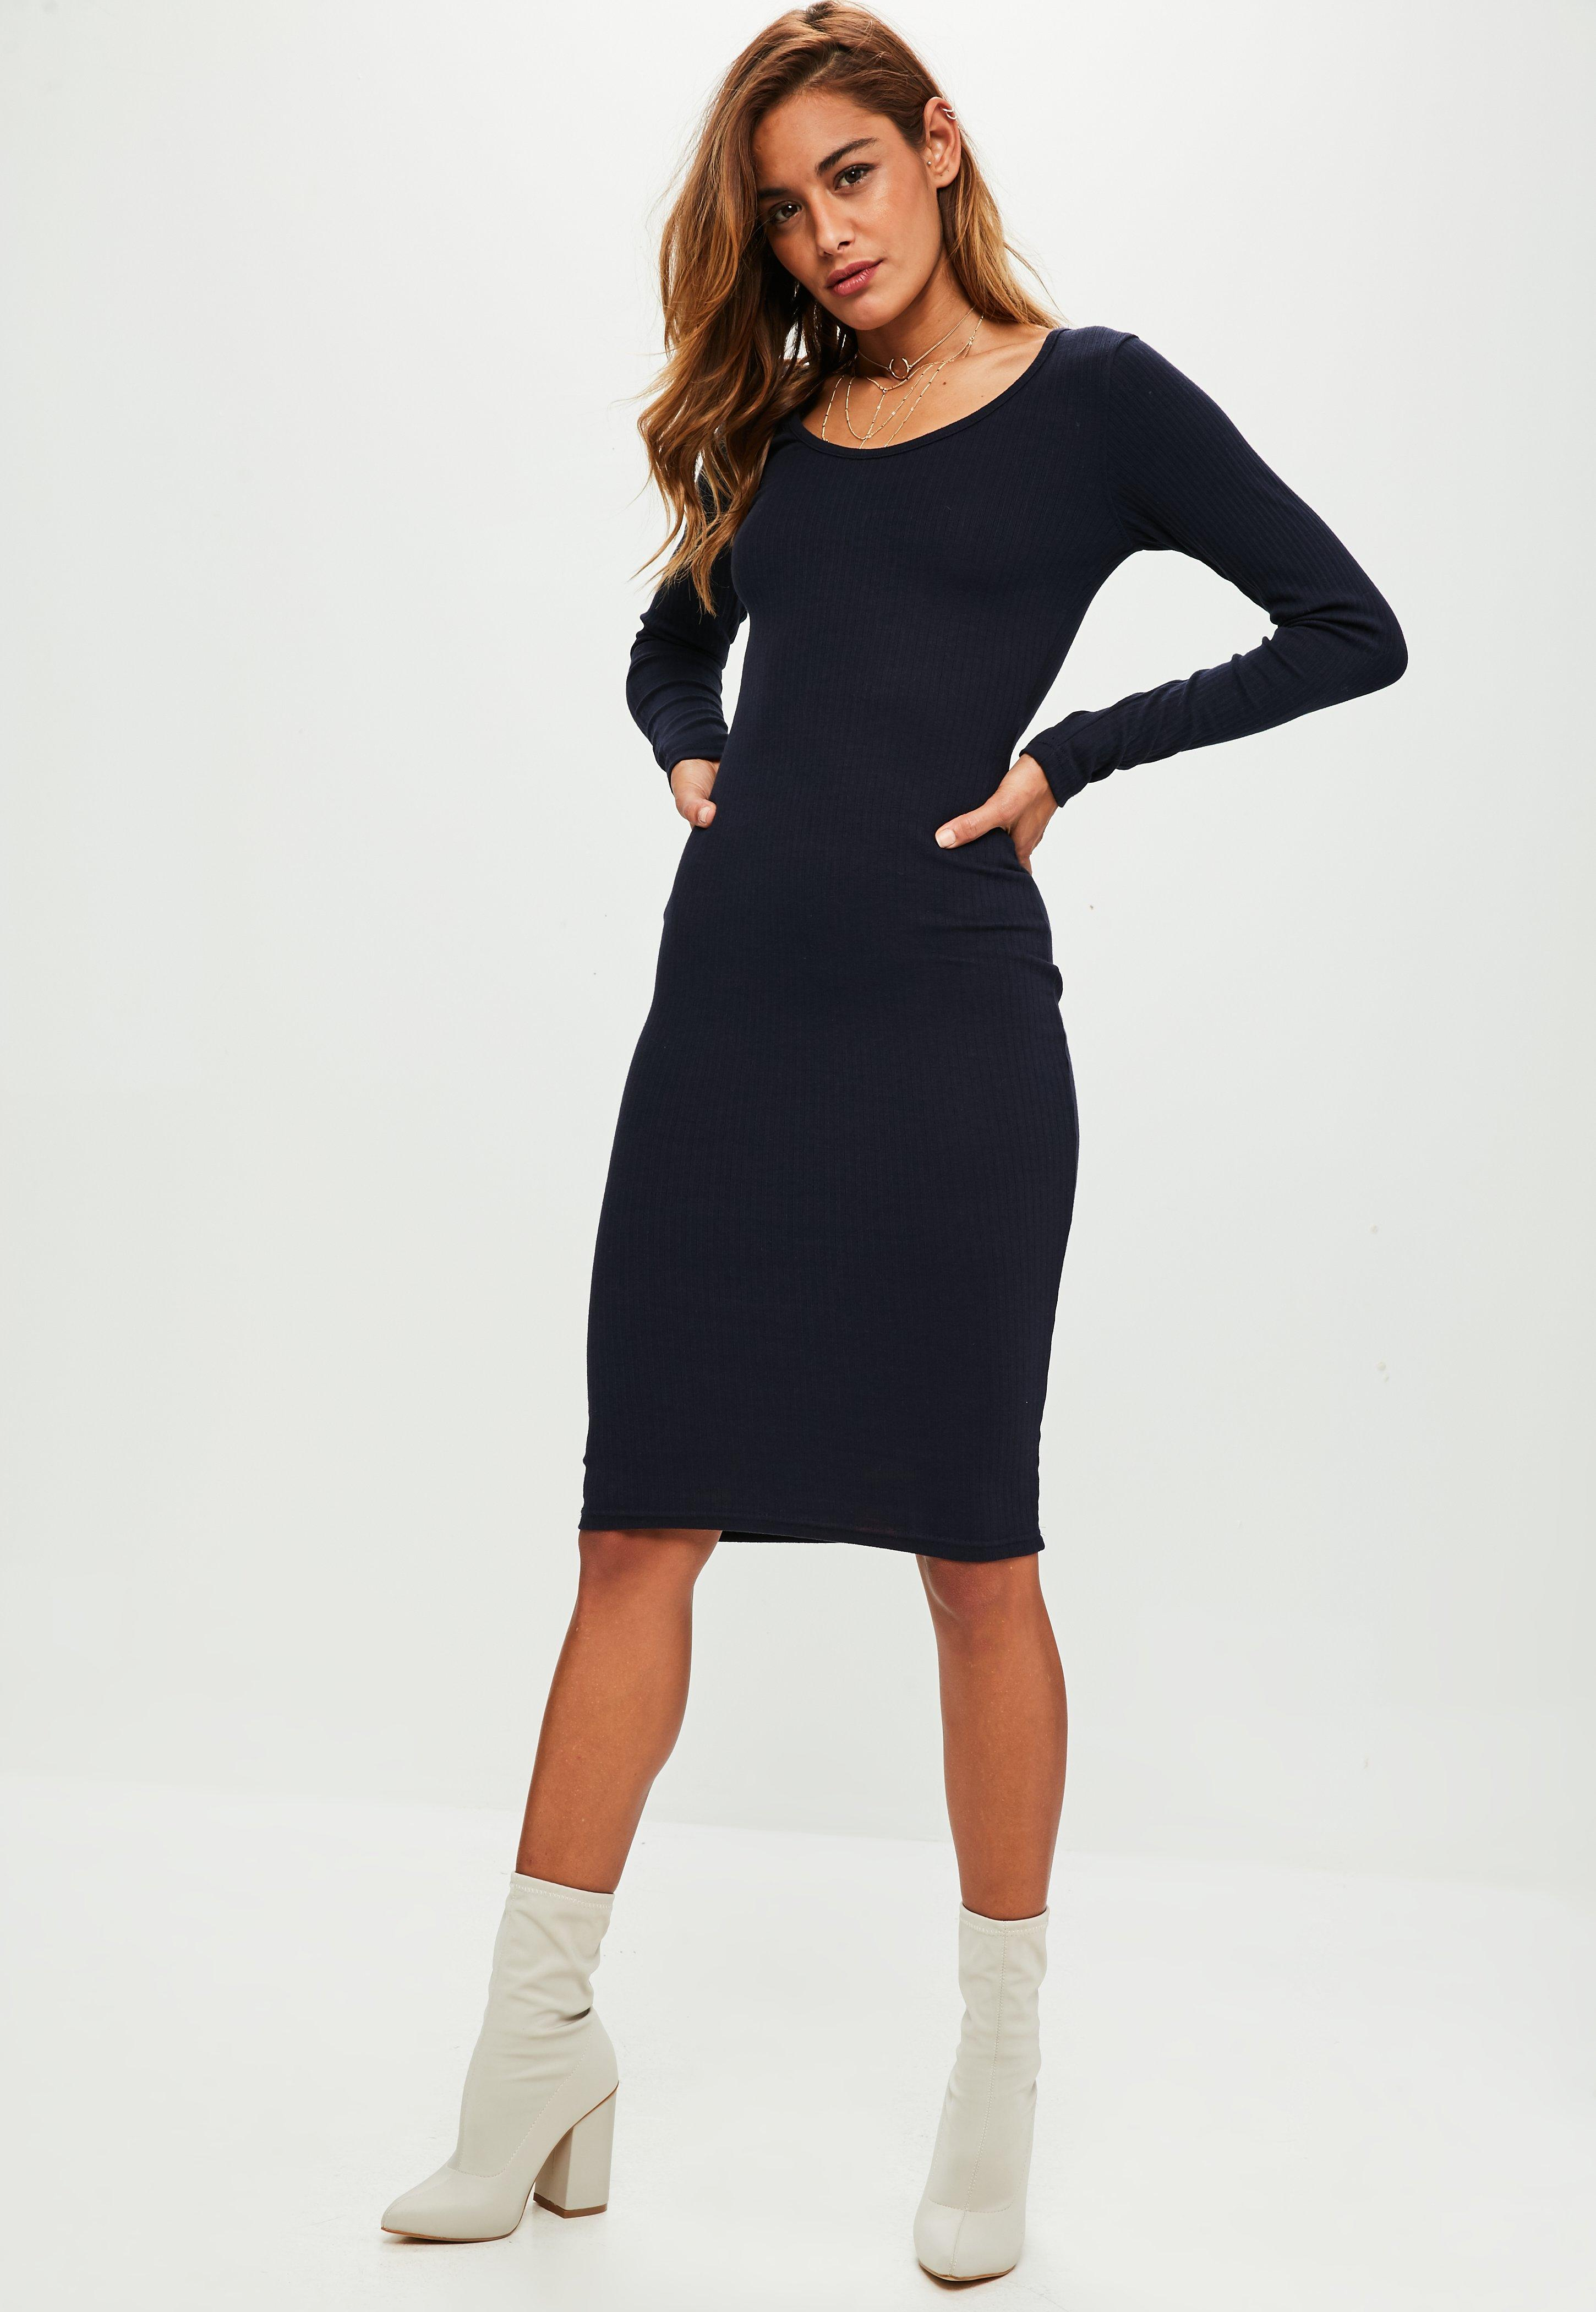 Black Ribbed Midi Dress - 14 / BLACK I Saw It First Cheap Sale Footaction Cheap Sale Clearance Wear Resistance jDwFzs3ryy